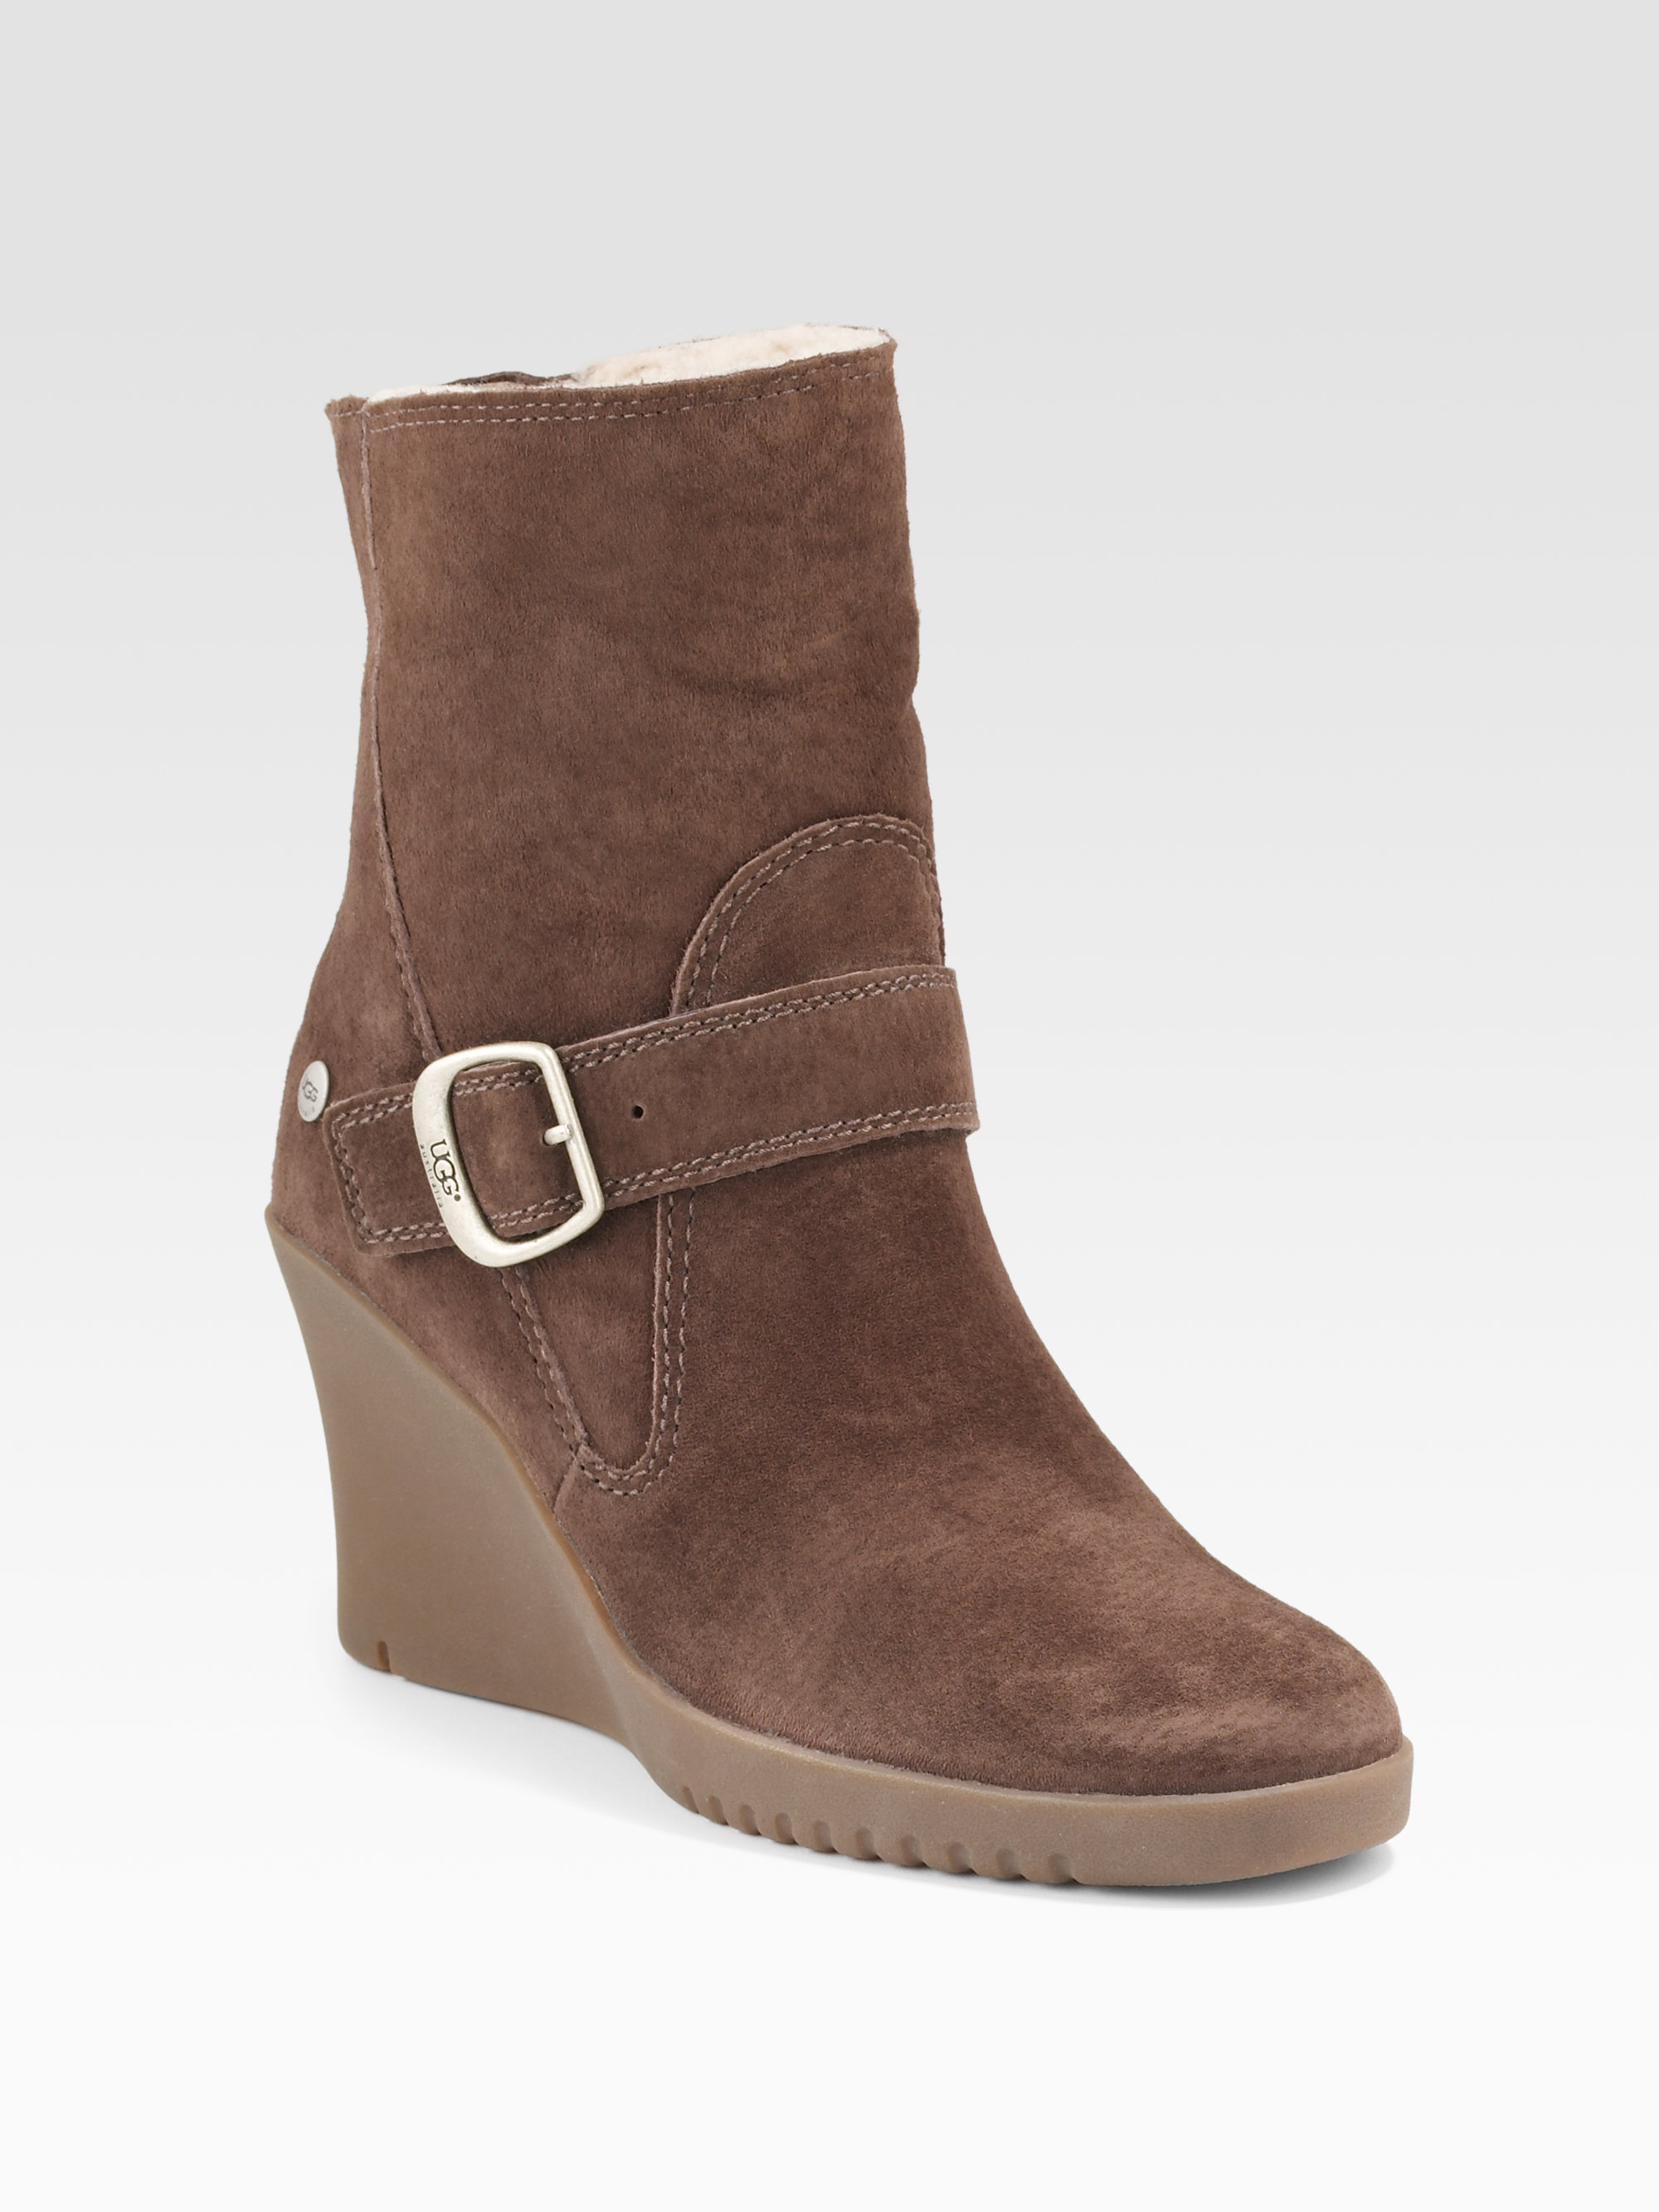 Shop eBay for great deals on Wedge Suede Ankle Boots for Women. You'll find new or used products in Wedge Suede Ankle Boots for Women on eBay. Free shipping on selected items.